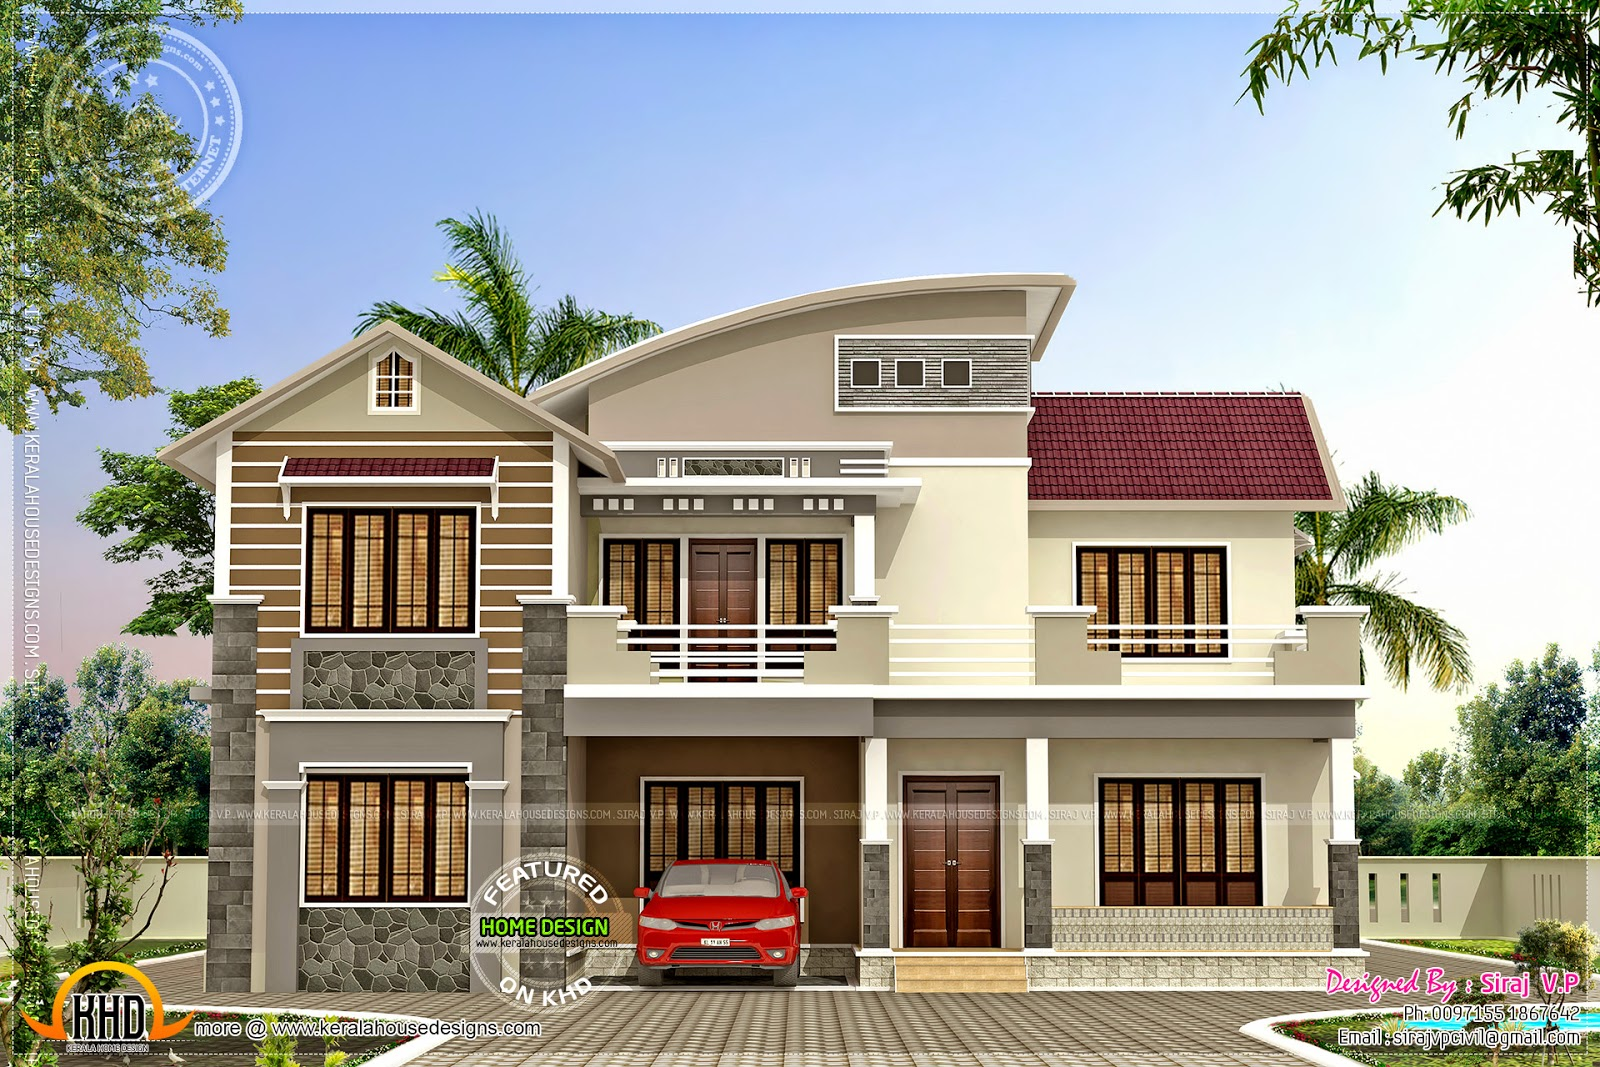 Beautiful little double storied house keralahousedesigns for Modern house plans for 1600 sq ft